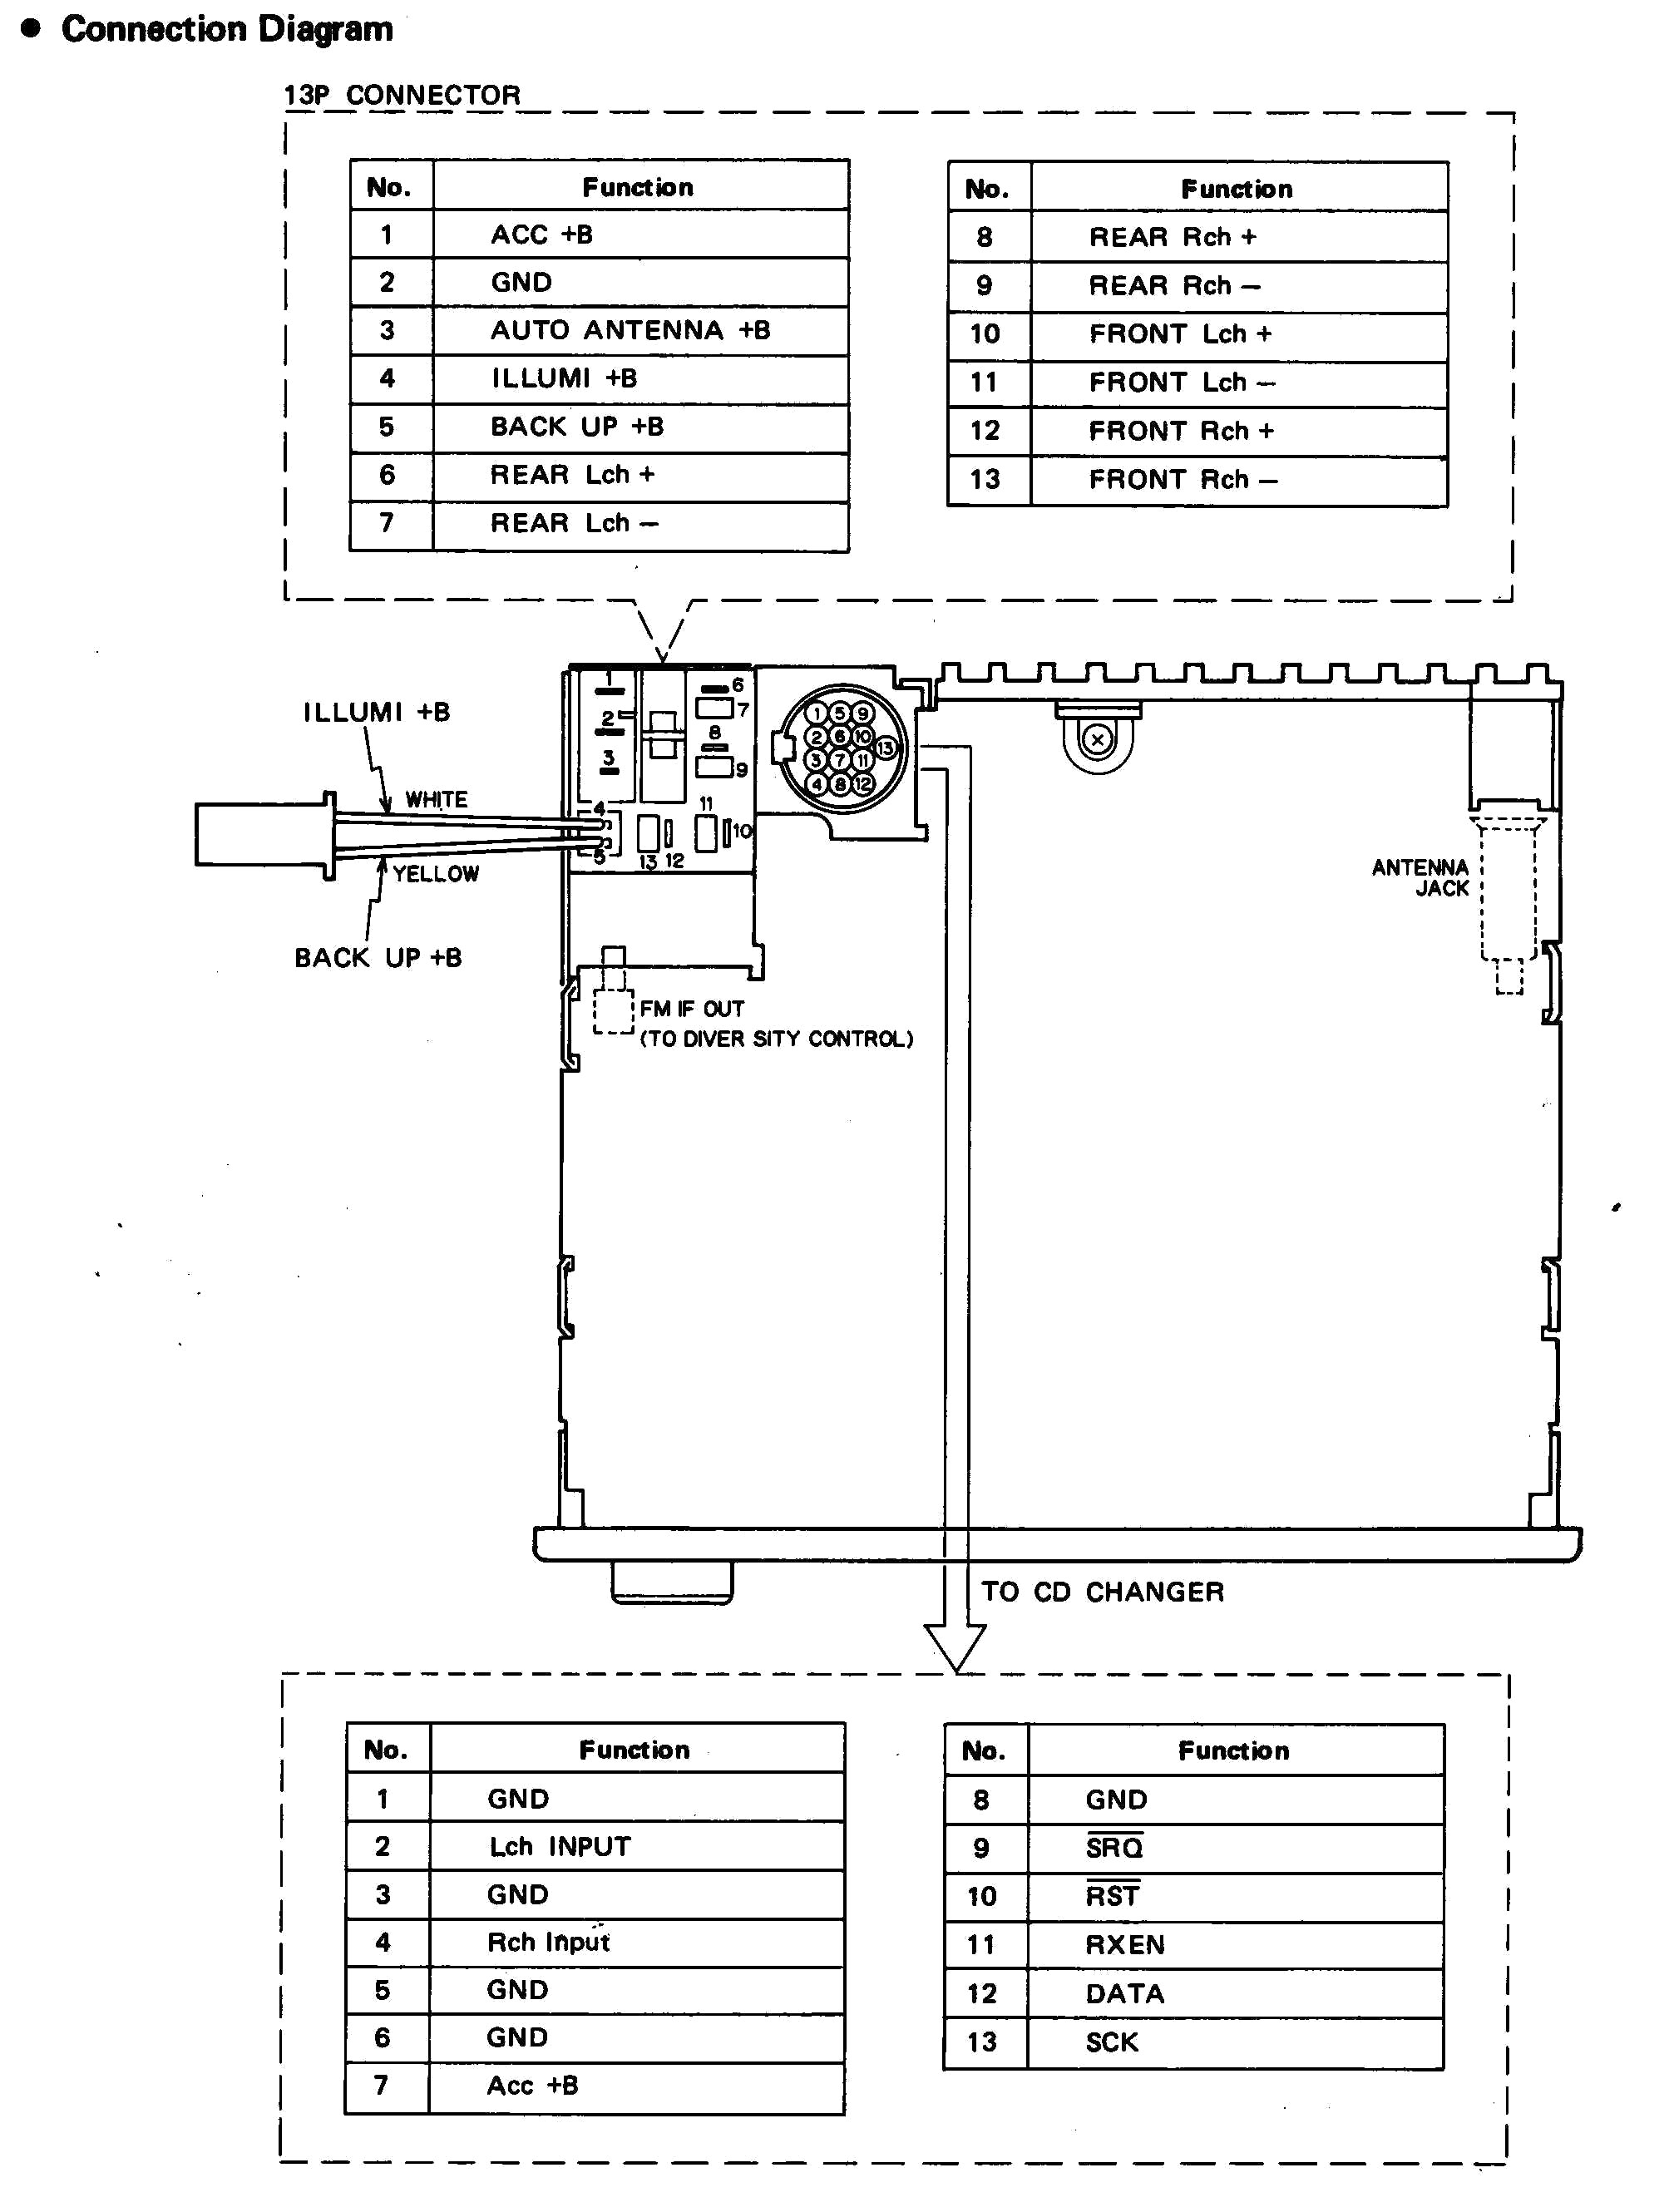 john deere tractor radio wiring diagram Download-Sony Xplod Car Stereo Wiring Diagram 12-k